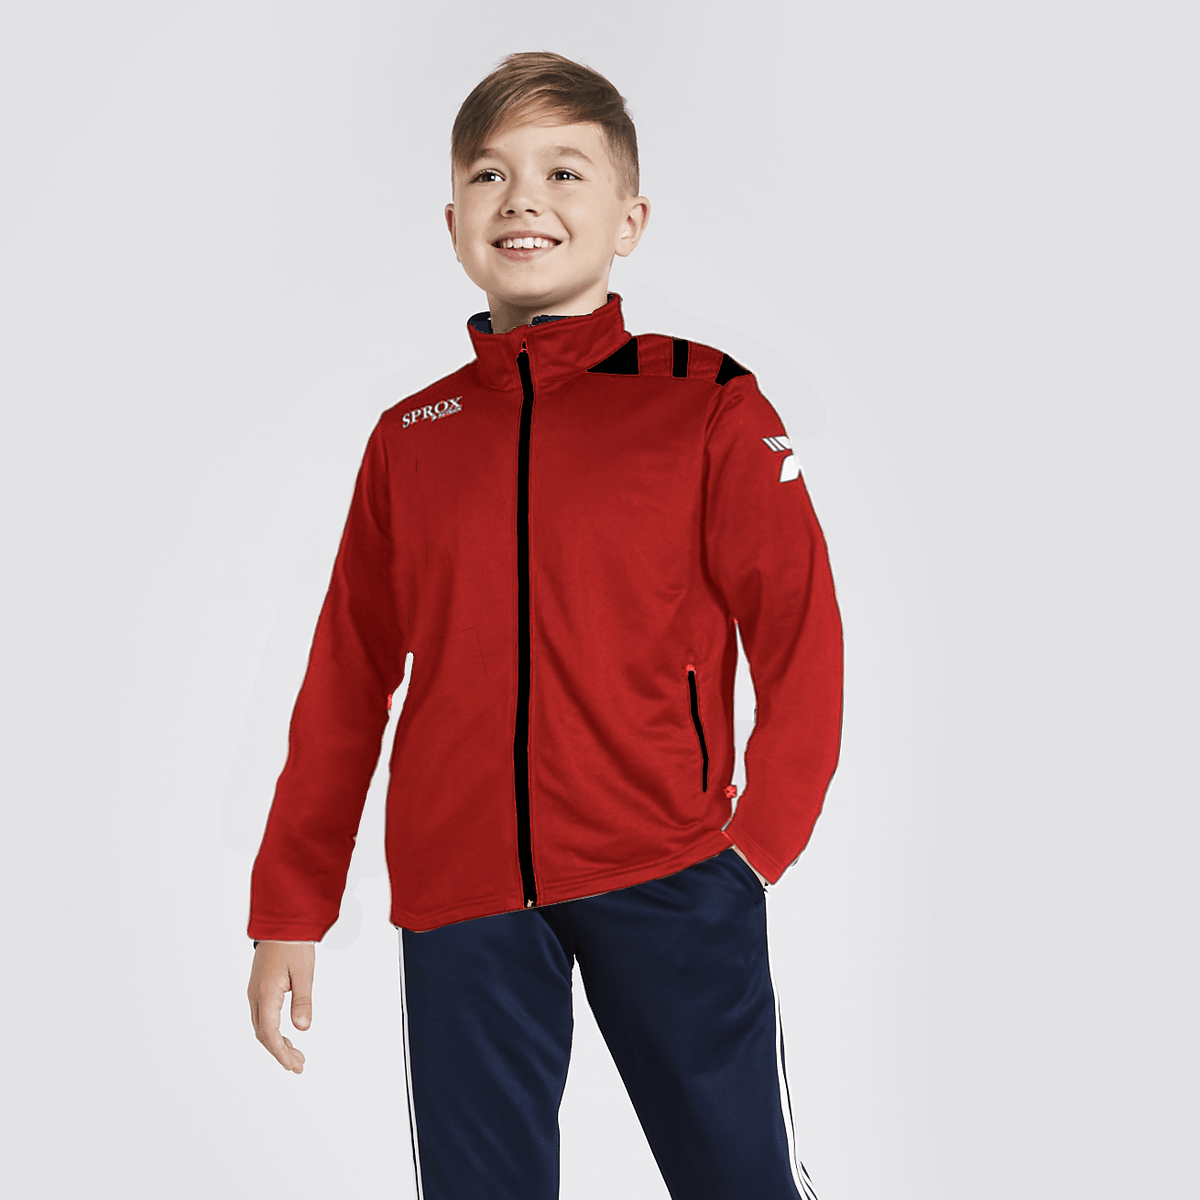 PTRK Boy's Full Zip Sportswears Poly Jacket Boy's Jacket SRK Red Black 4XS